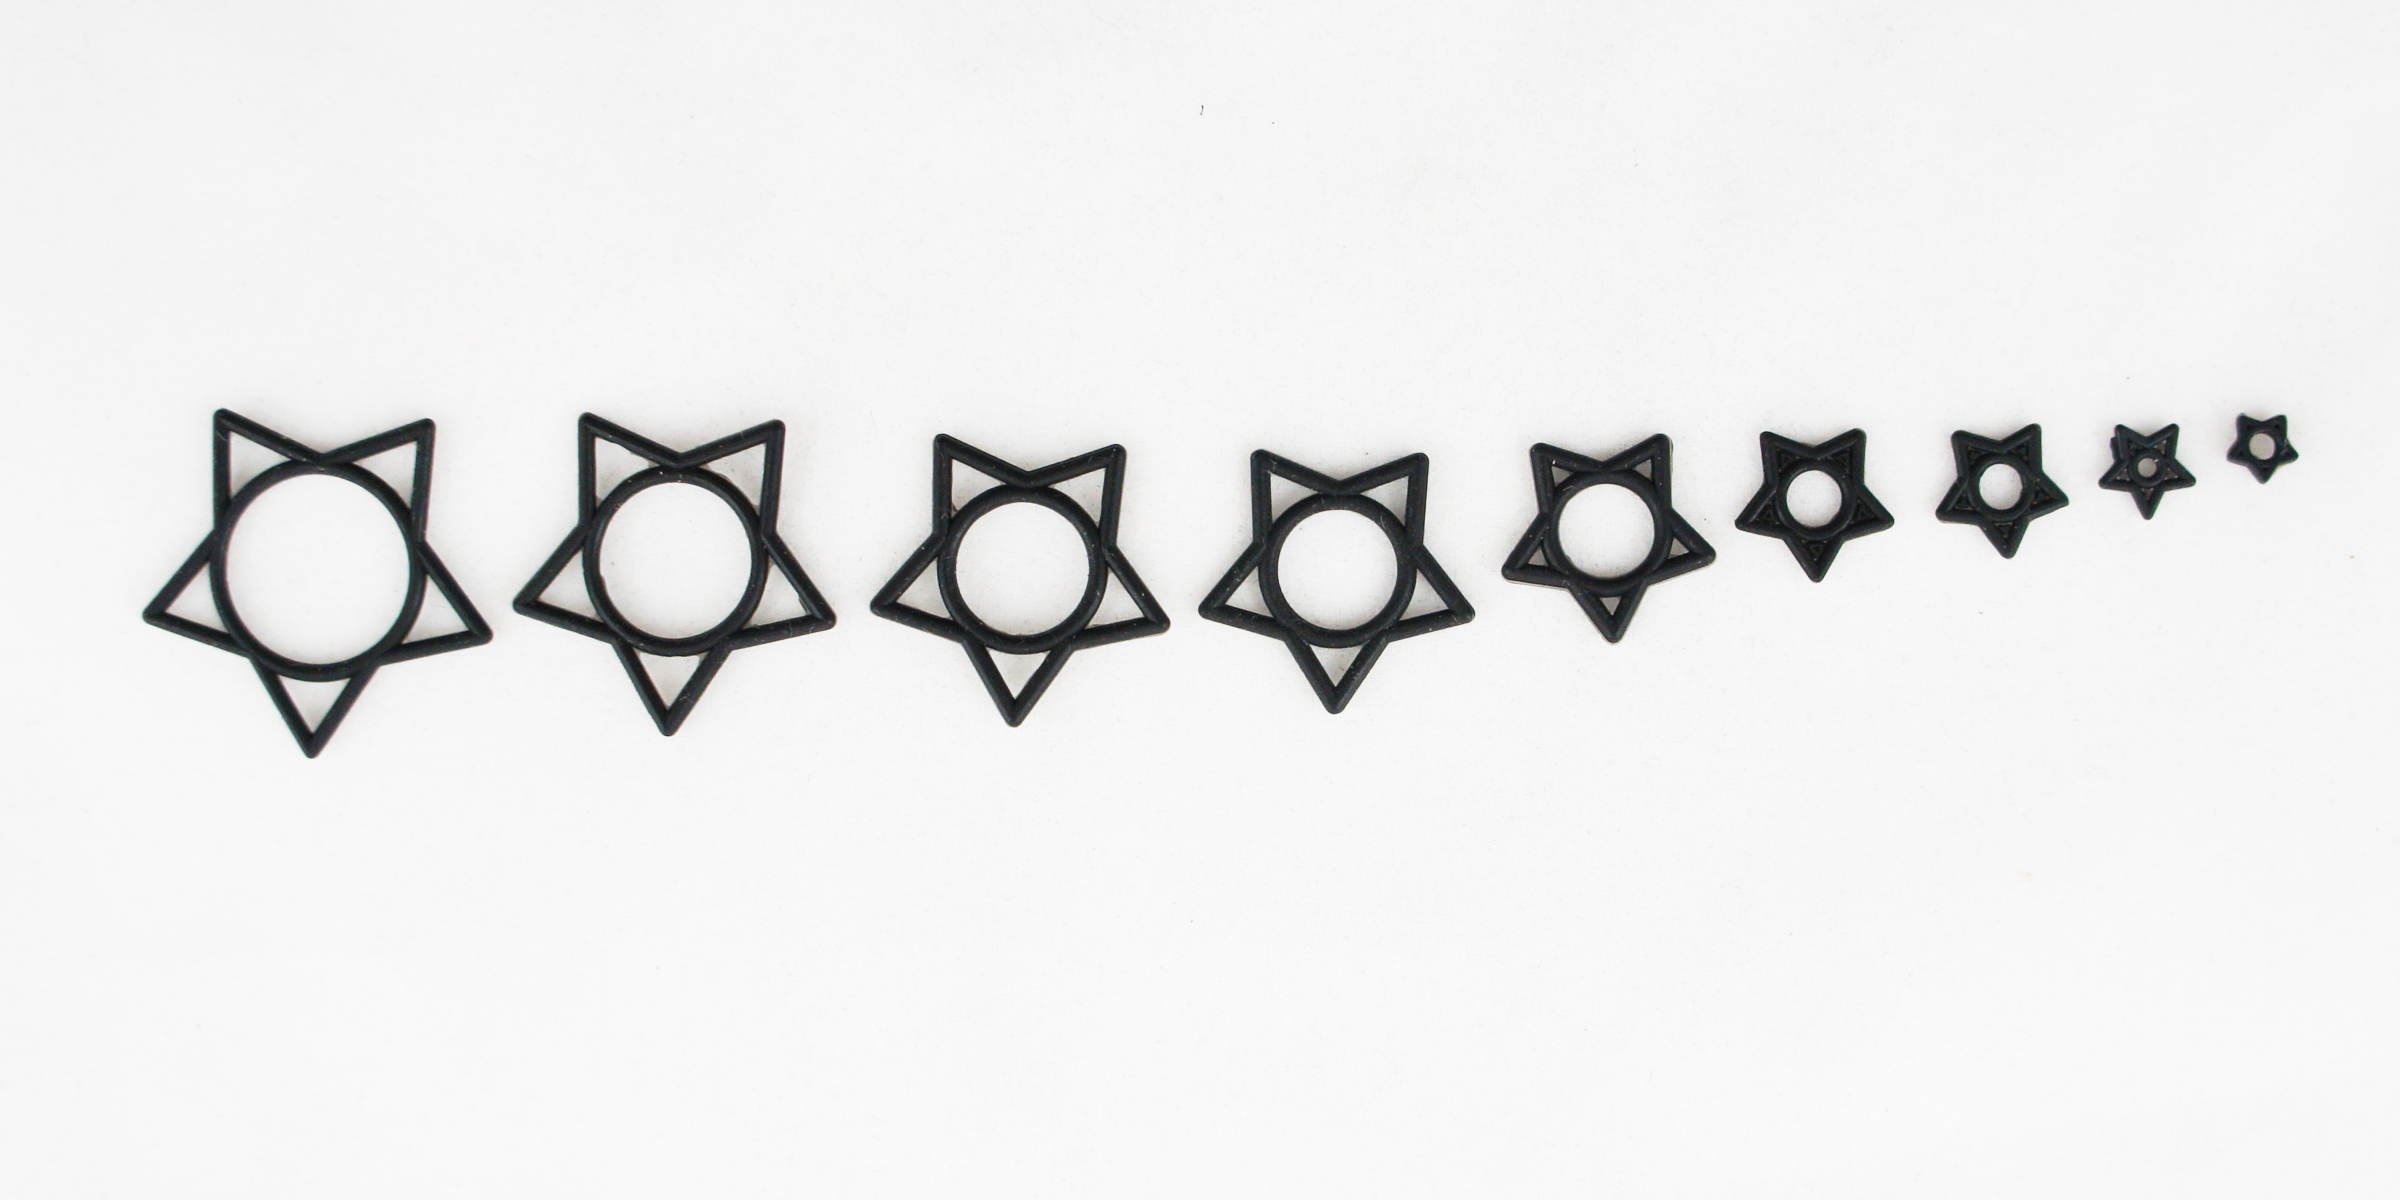 10 Set Hollow Star O-Ring